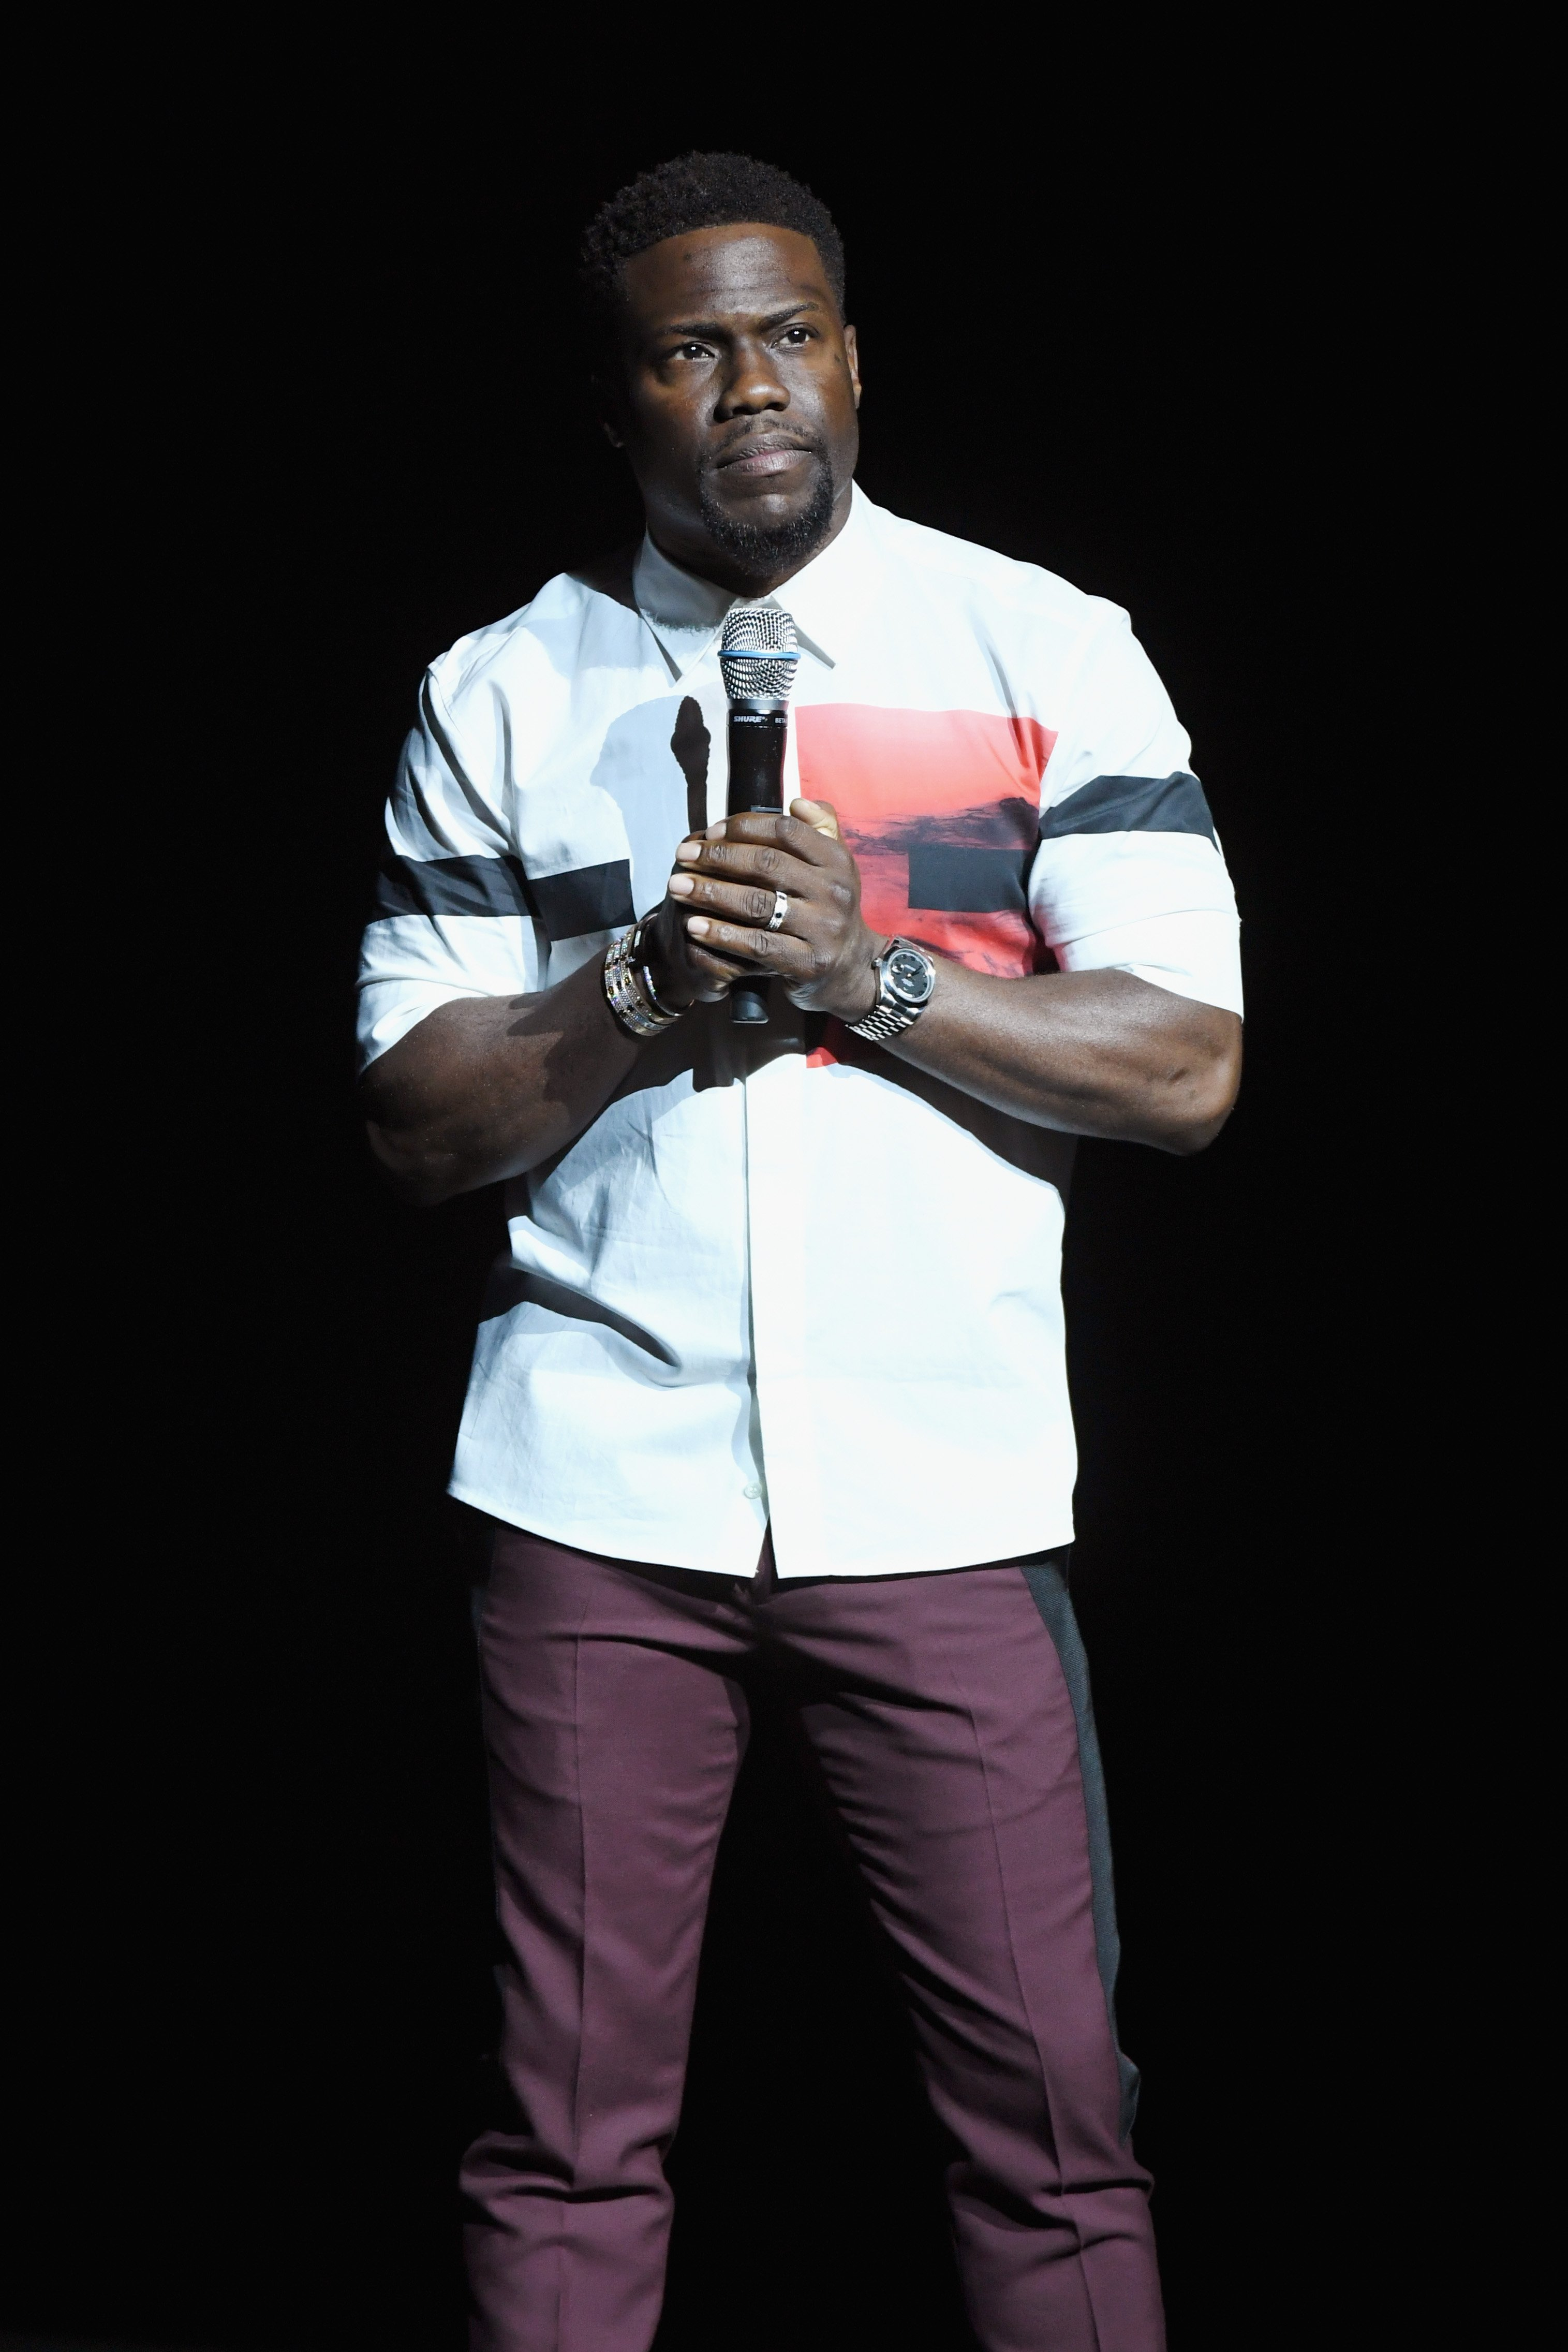 Kevin Hart speaks onstage during CinemaCon 2018 Universal Pictures Invites You to a Special Presentation Featuring Footage from its Upcoming Slate at The Colosseum at Caesars Palace. | Source: Getty Images.